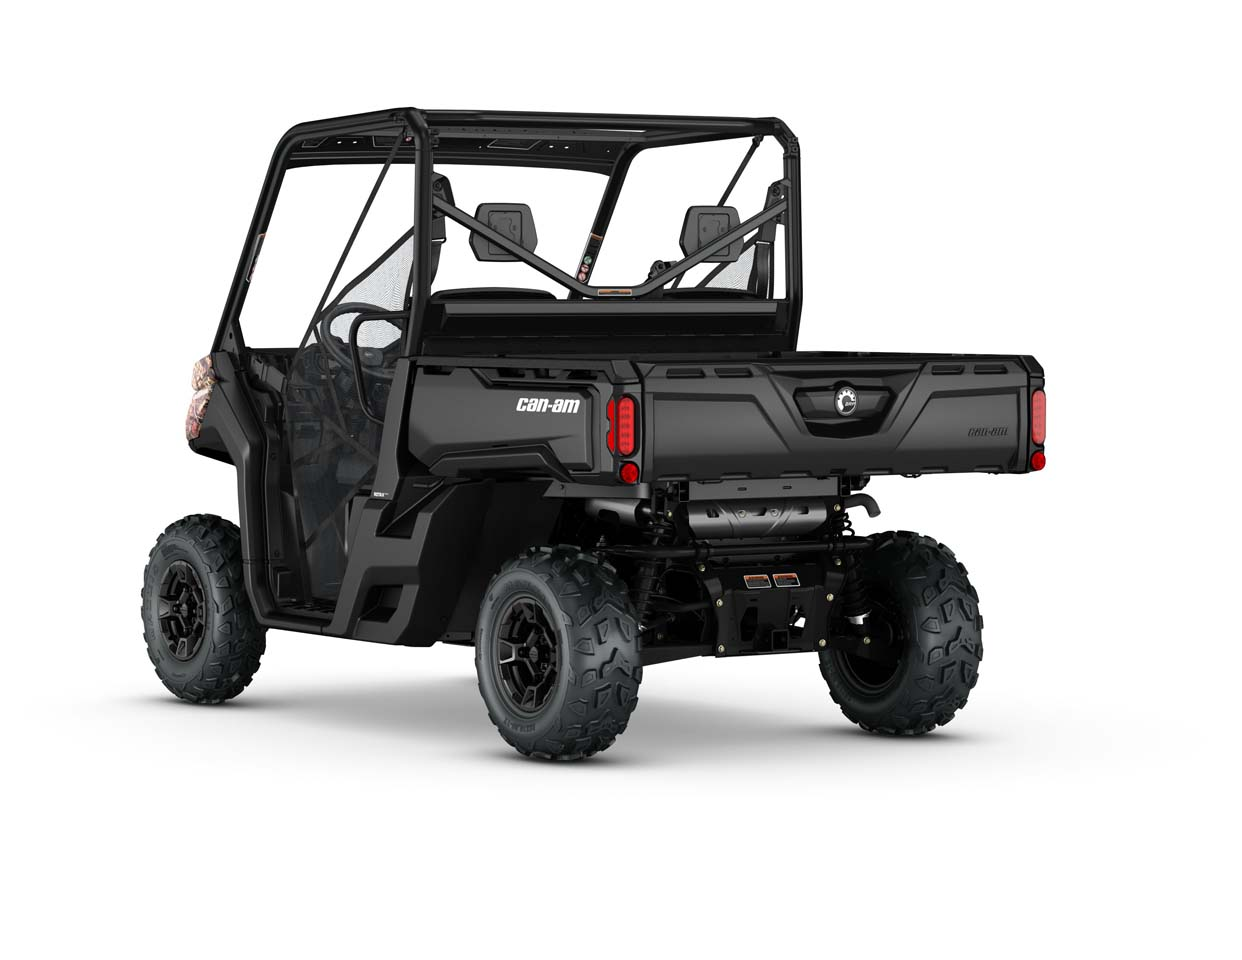 new defender hd5 side by side vehicle brings remarkable value to the expanding can am lineup. Black Bedroom Furniture Sets. Home Design Ideas